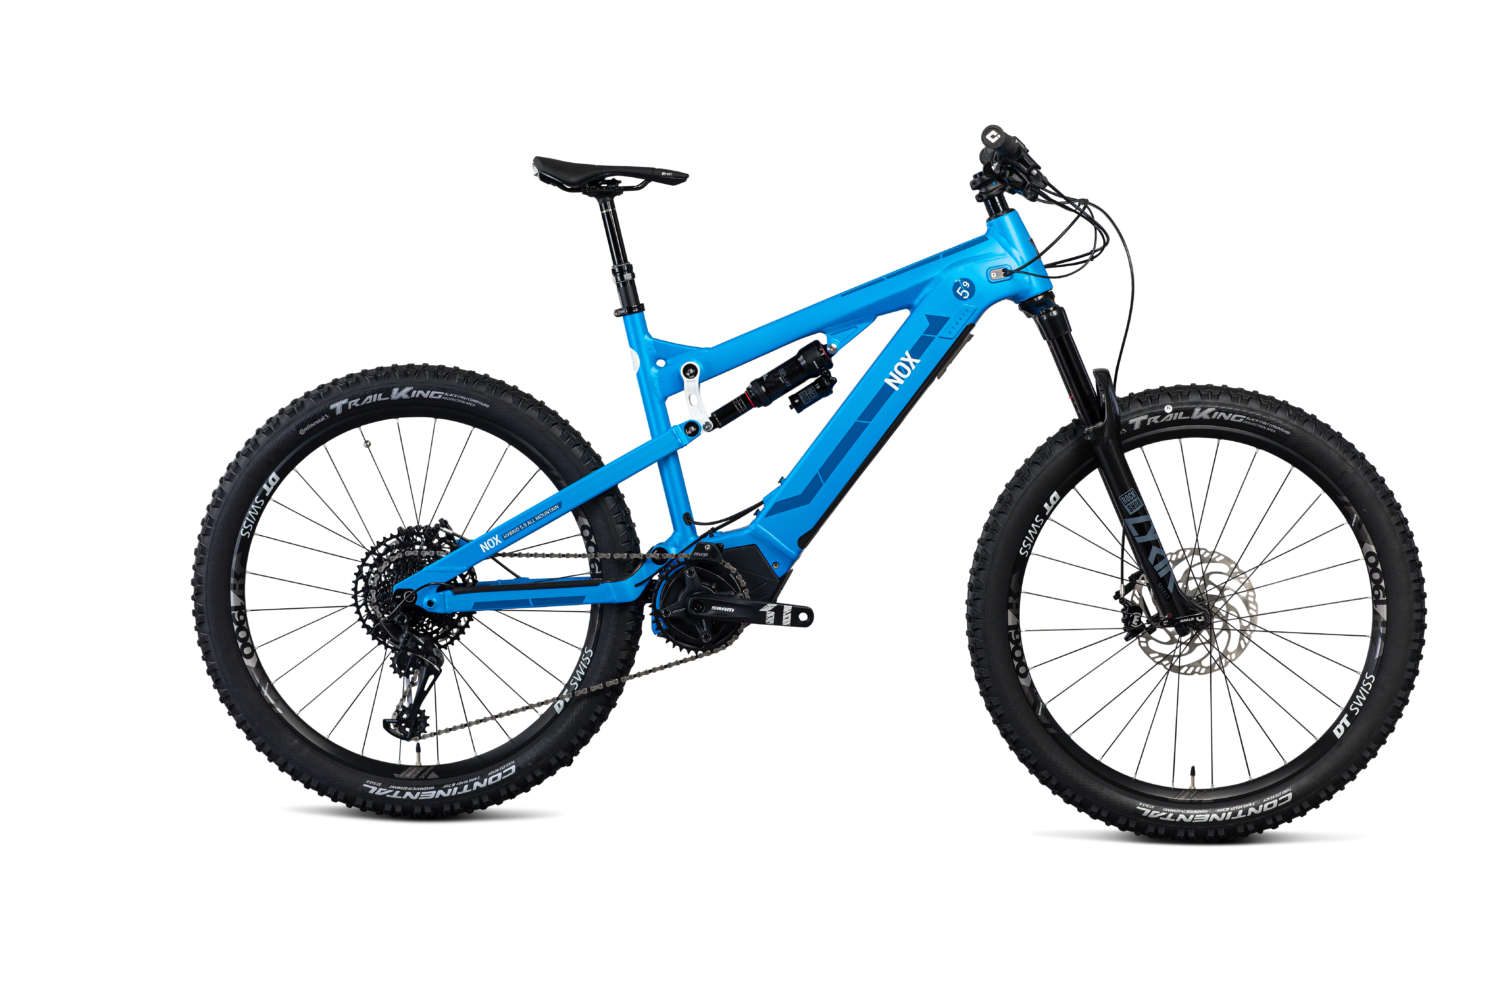 Nox Hybrid 5.9 All-Mountain Expert 2021